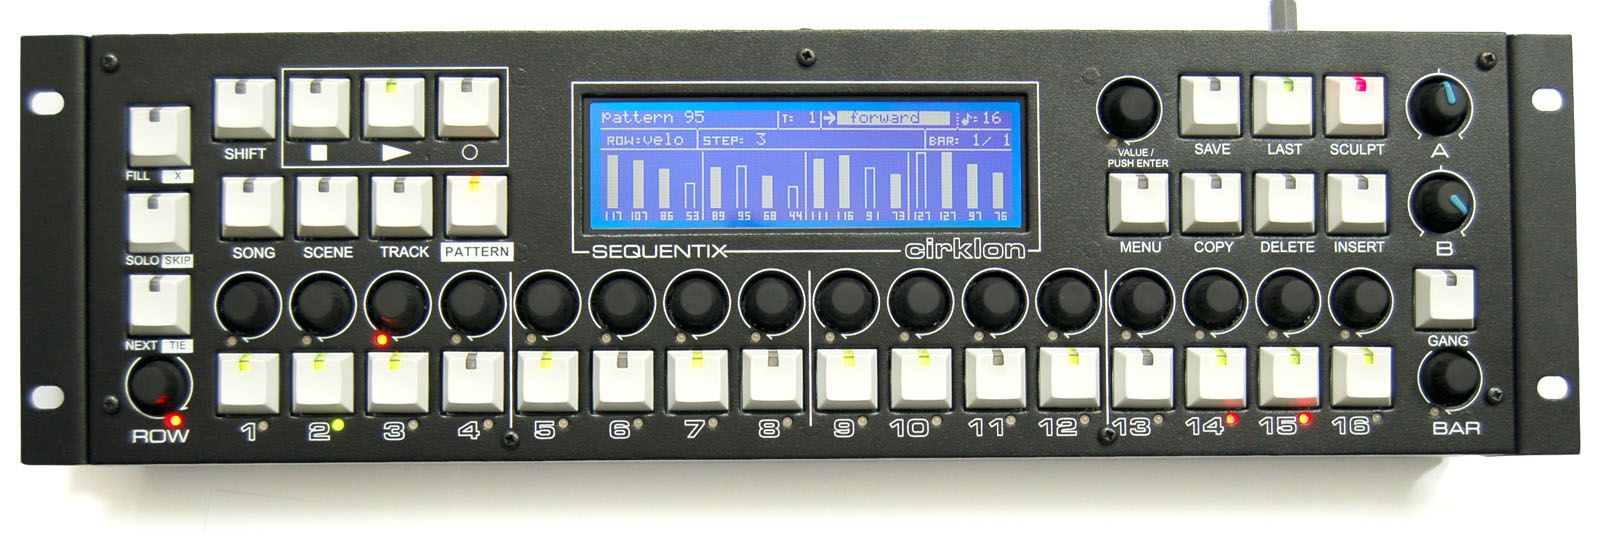 an introduction to the electronic music midi sequencer Live was a revolution when it came out because it took the sequencer from the studio (where it had historically lived) to the world of live music ableton's sequencer quickly became a real institution and the favorite sequencer of numerous djs and electronic musicians who use it both on stage and in the studio, alone or as a complement to their .